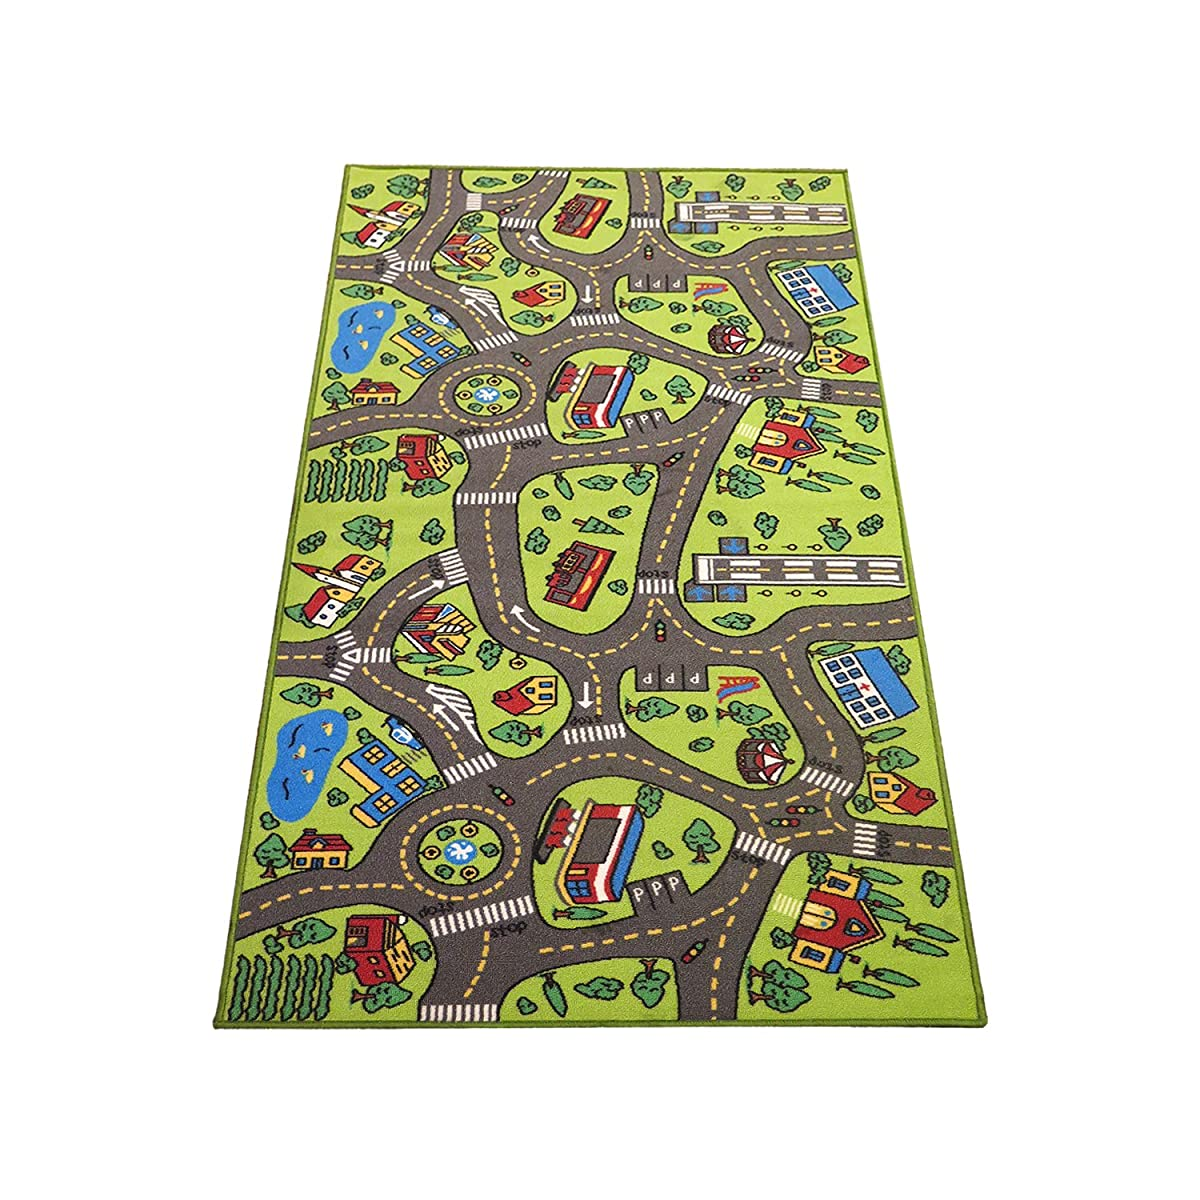 """Extra Large 79"""" x 40""""! Kids Carpet Playmat Rug City Life -Great For Playing With Cars & Toys - Play Safe Learn Educational & Have Fun -Ideal Gift For Children Baby Bedroom Play Room Game Play Mat Area"""